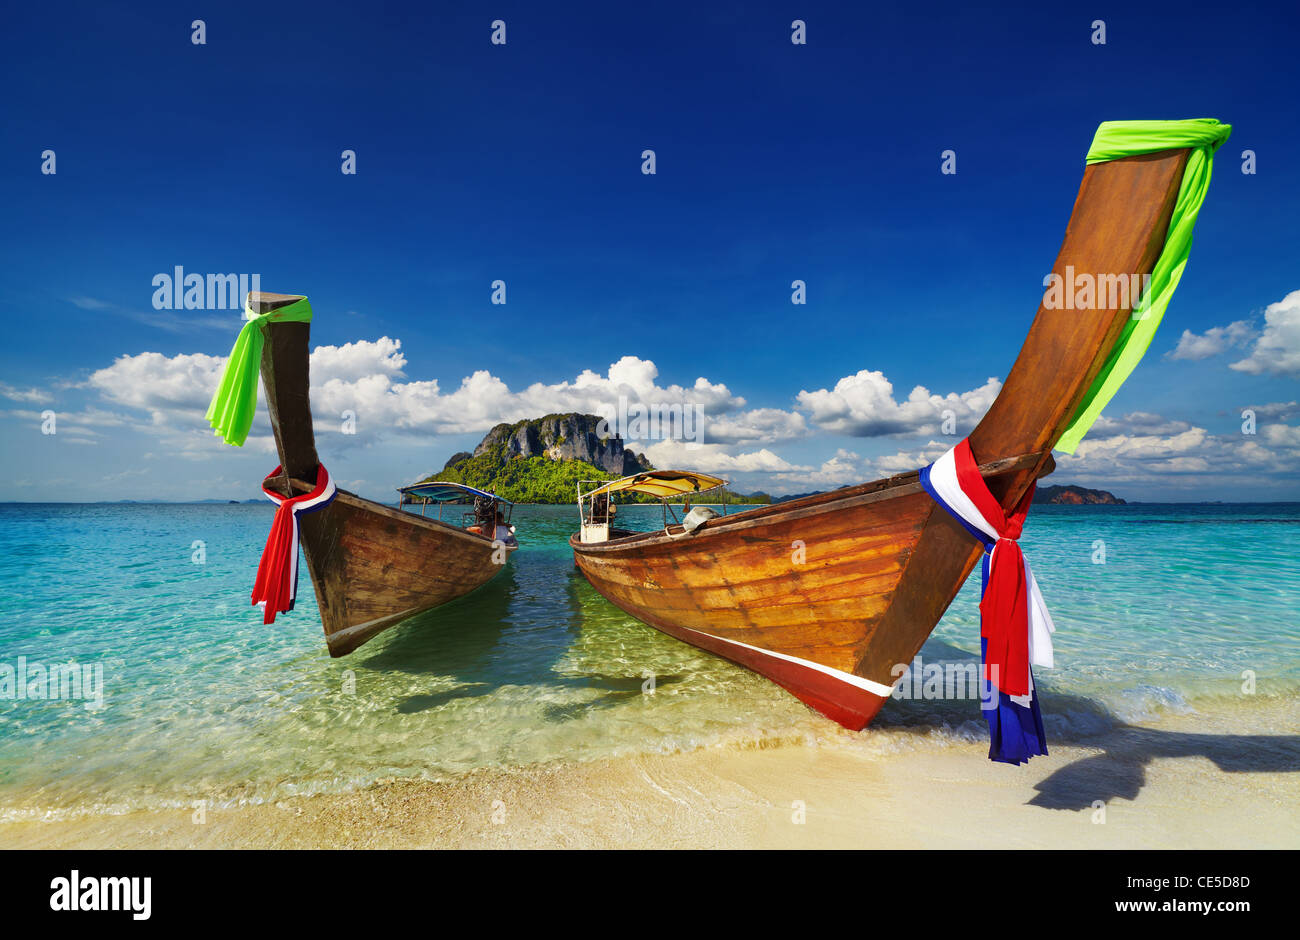 Longtail boats, Tropical beach, Andaman Sea, Thailand - Stock Image